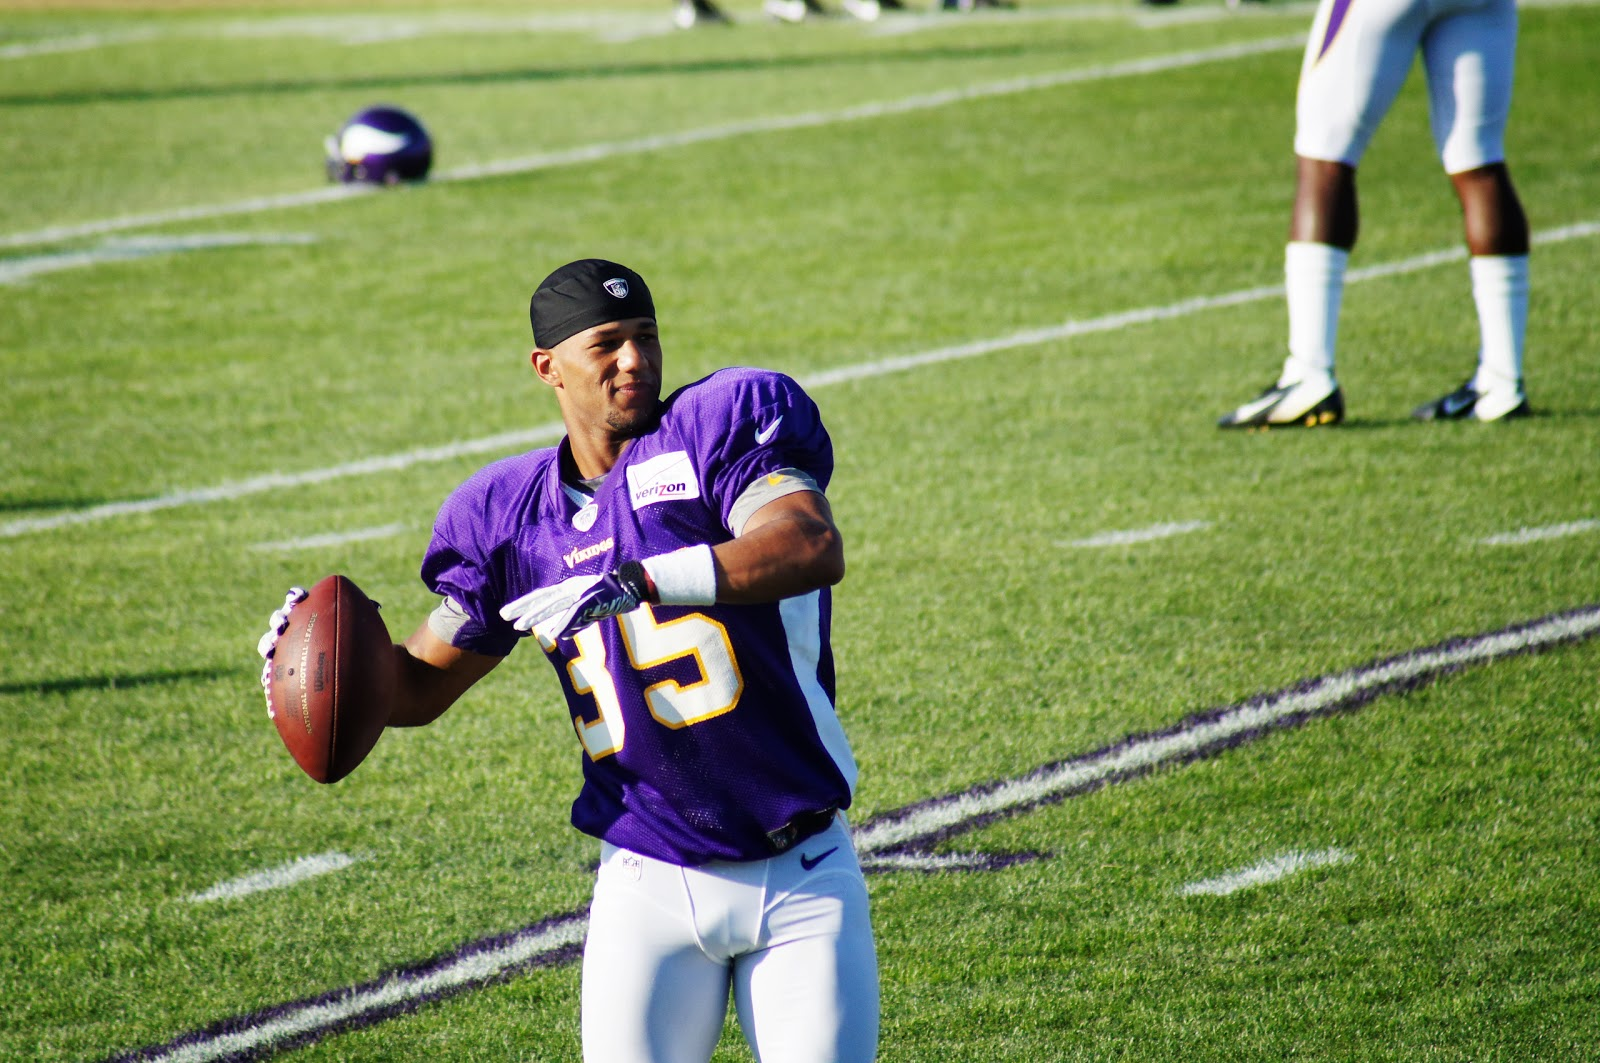 NFL Jerseys Cheap - Purplestick: The Marcus Sherels story keeps on going